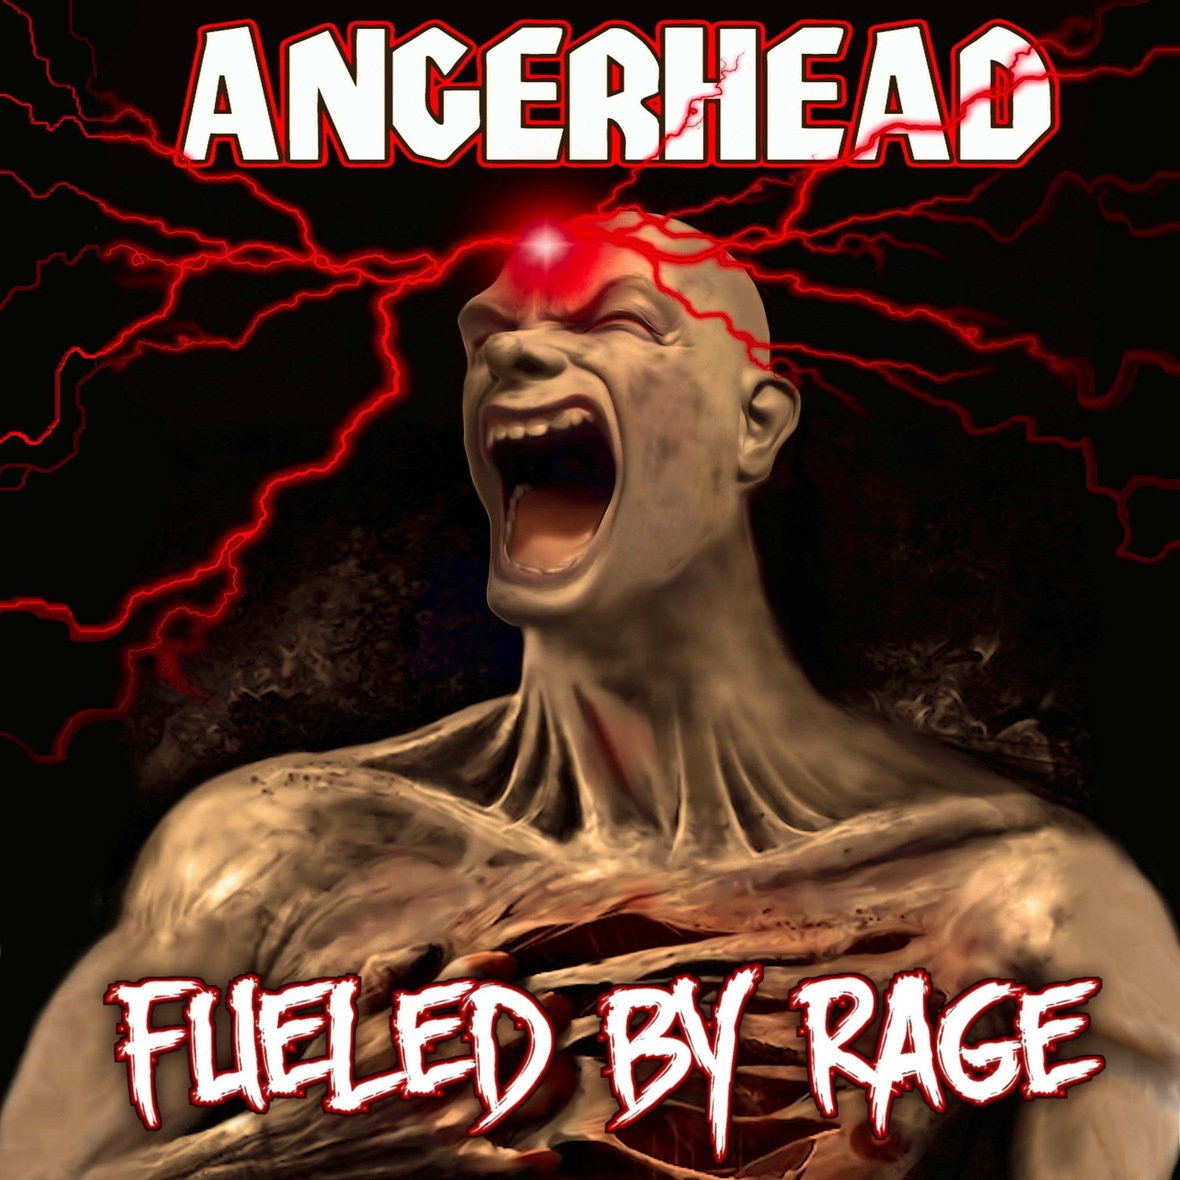 Angerhead - Fueled by Rage ep cover  2016